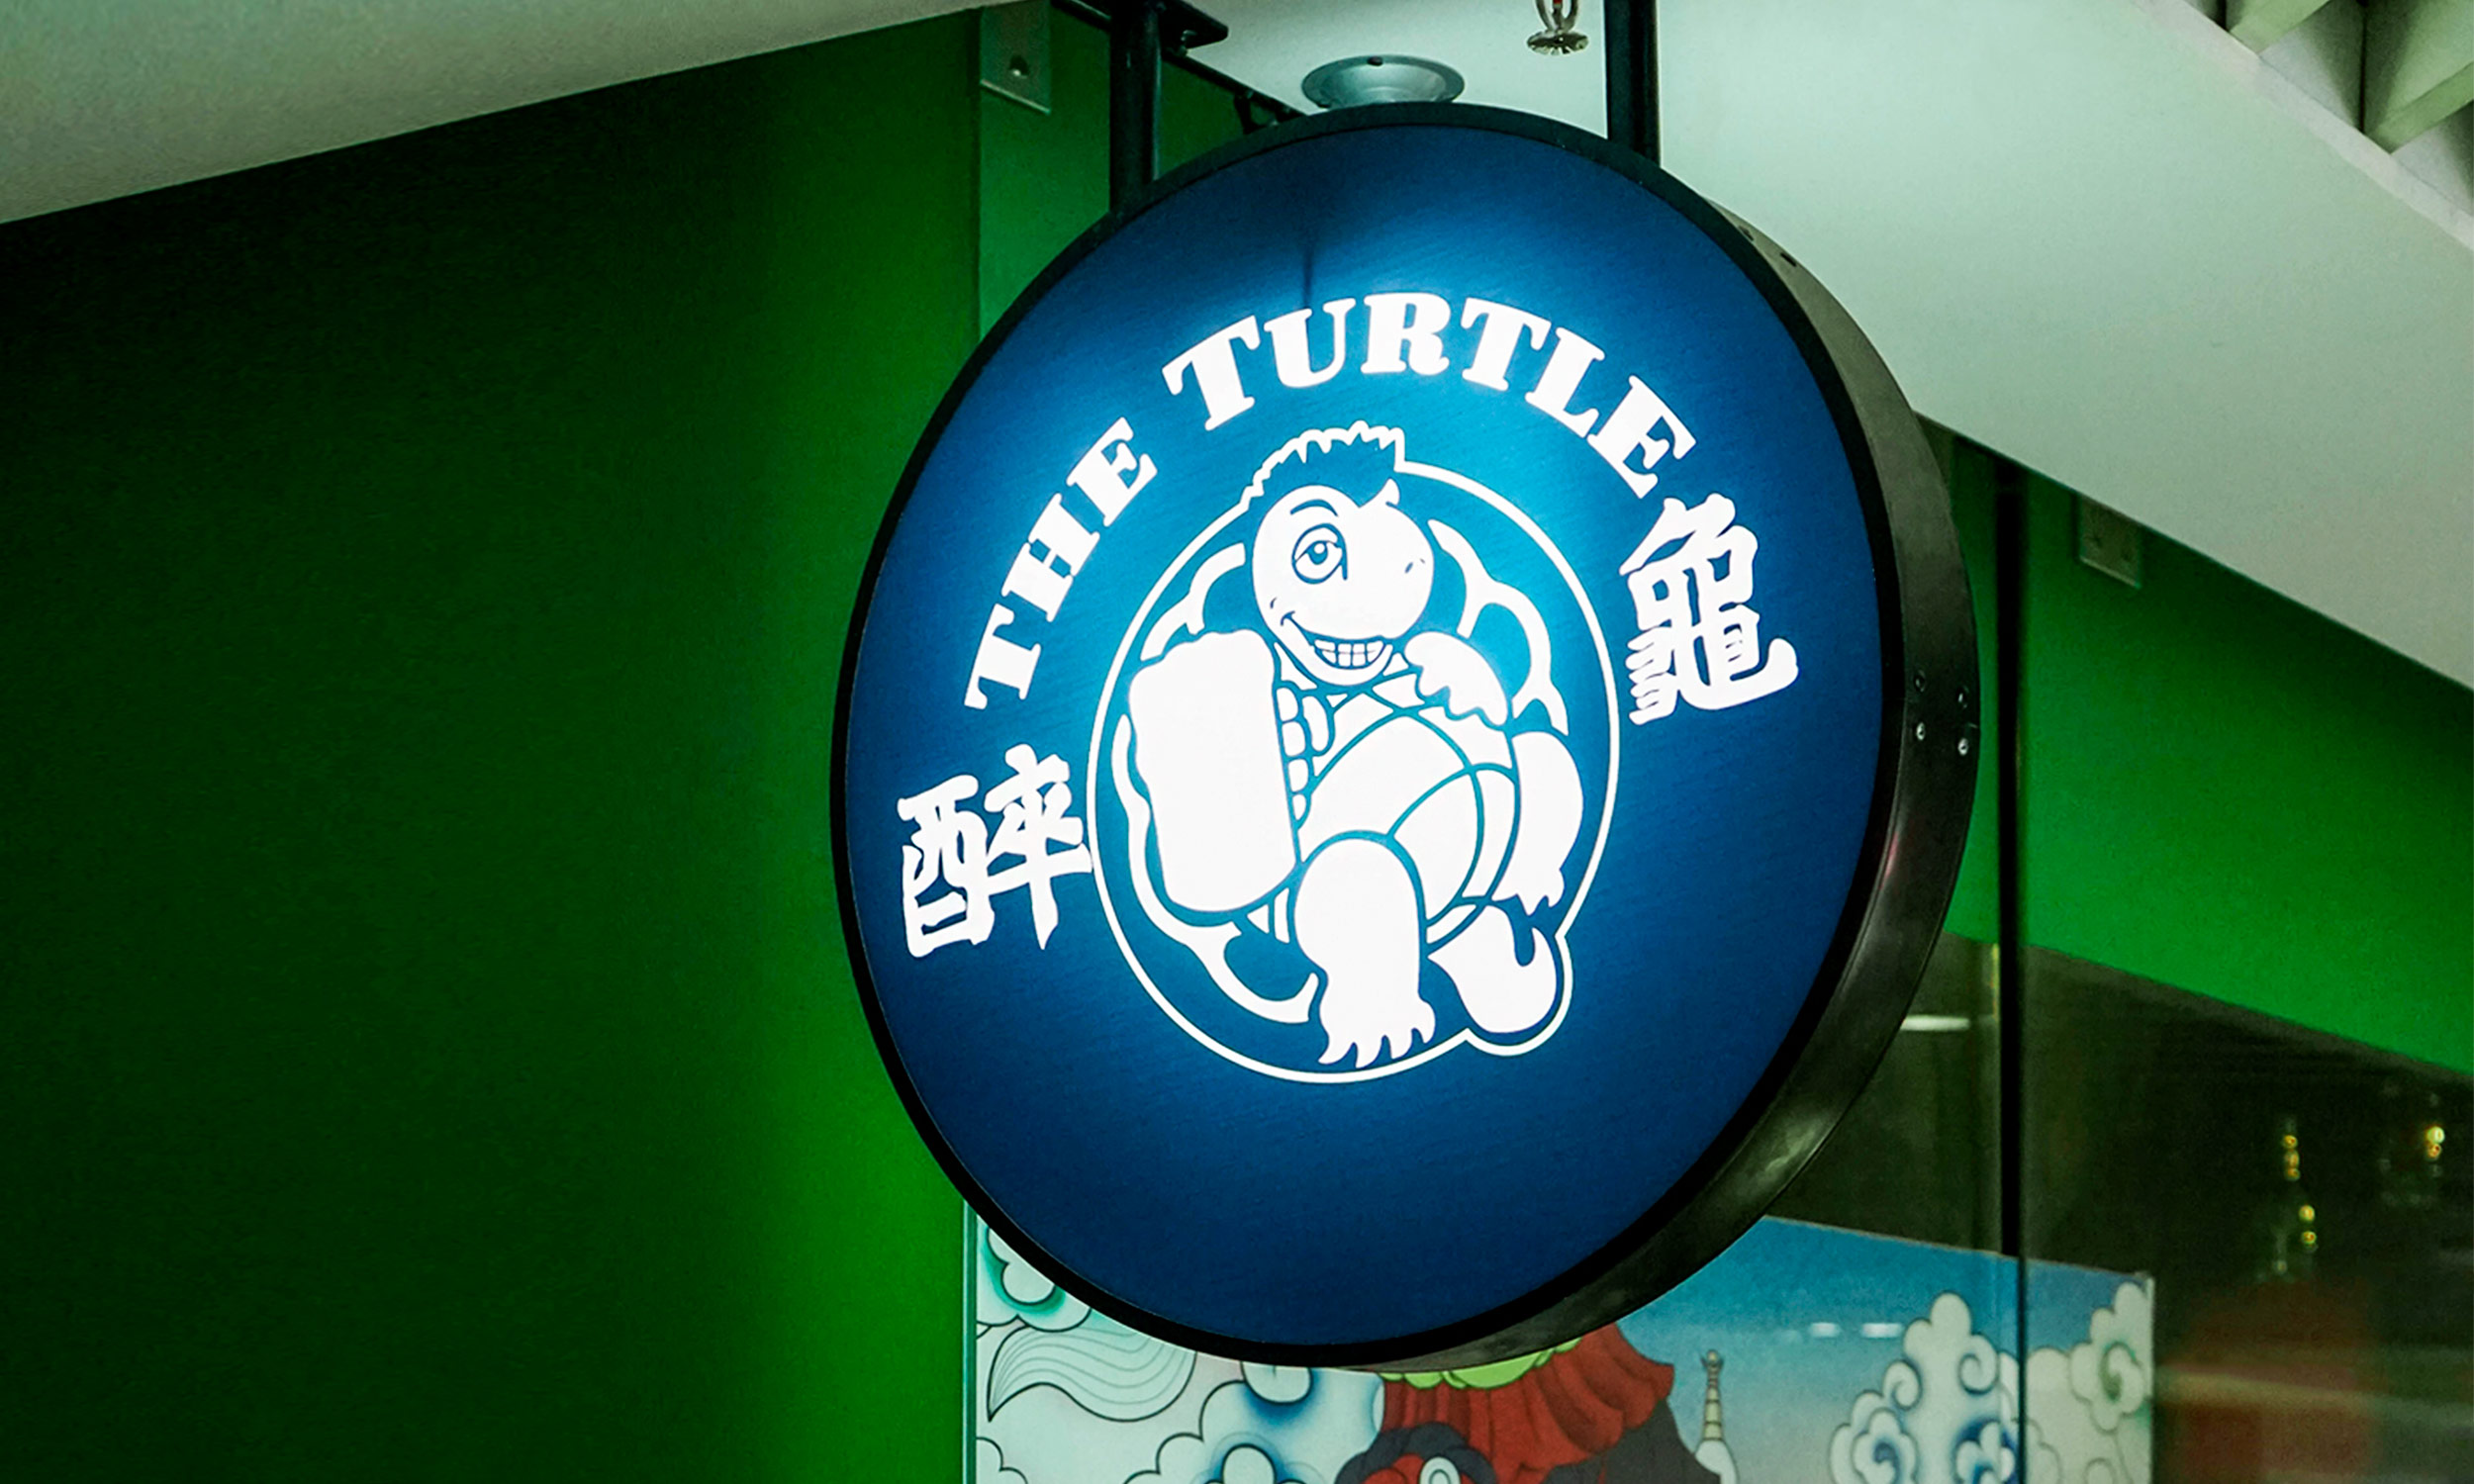 The Turtle Bar in Kunming City, in southern Yunnan province.